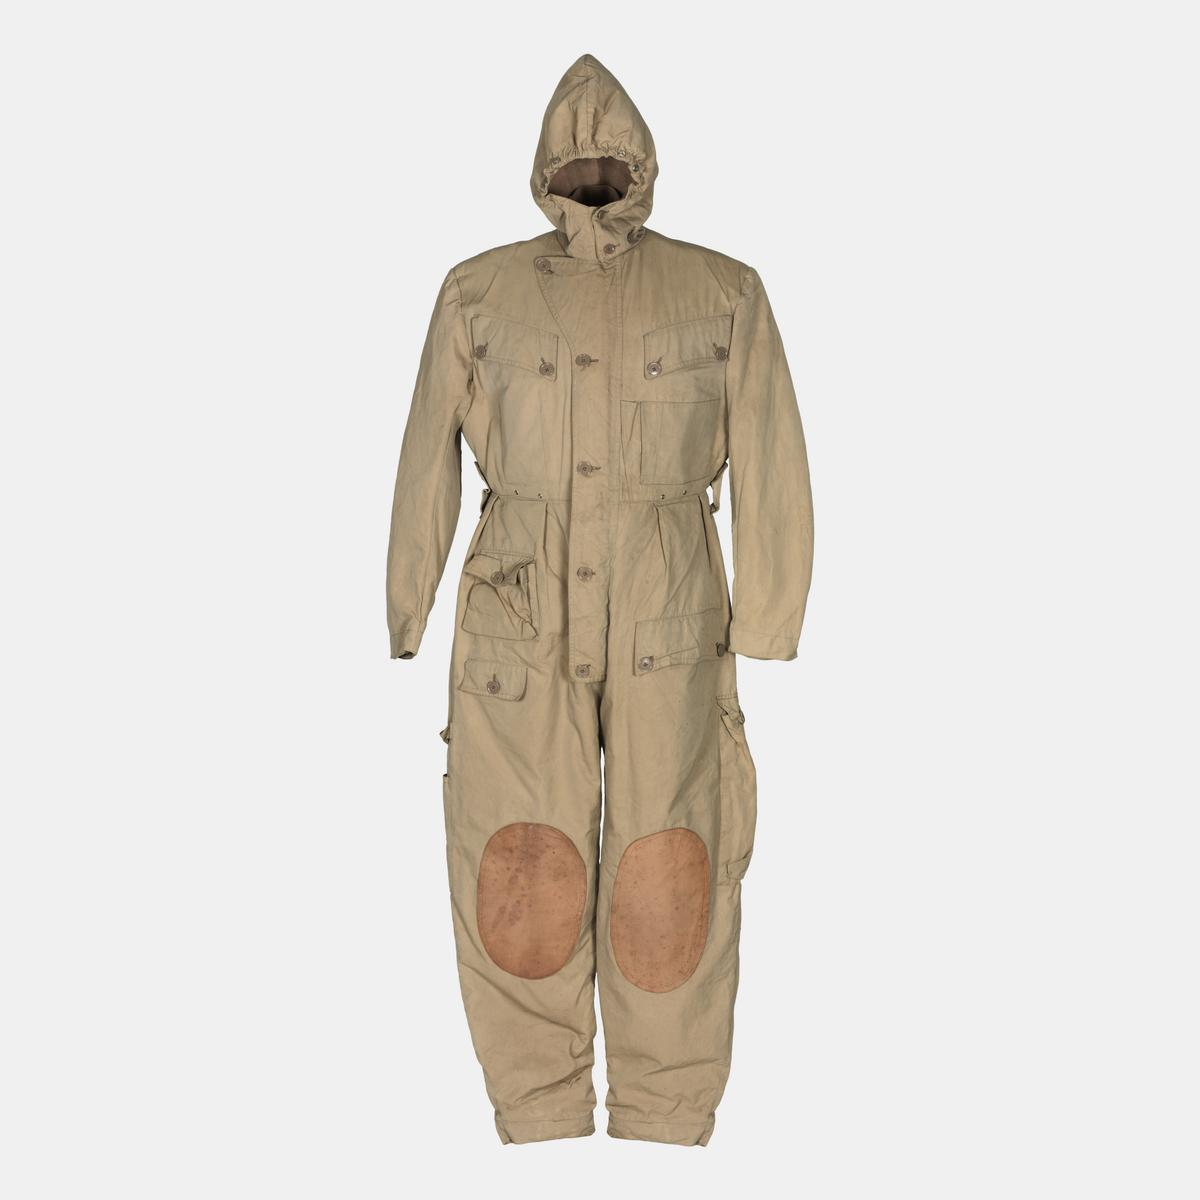 Protective suit worn by a member of the Combined Operations Pilotage Parties